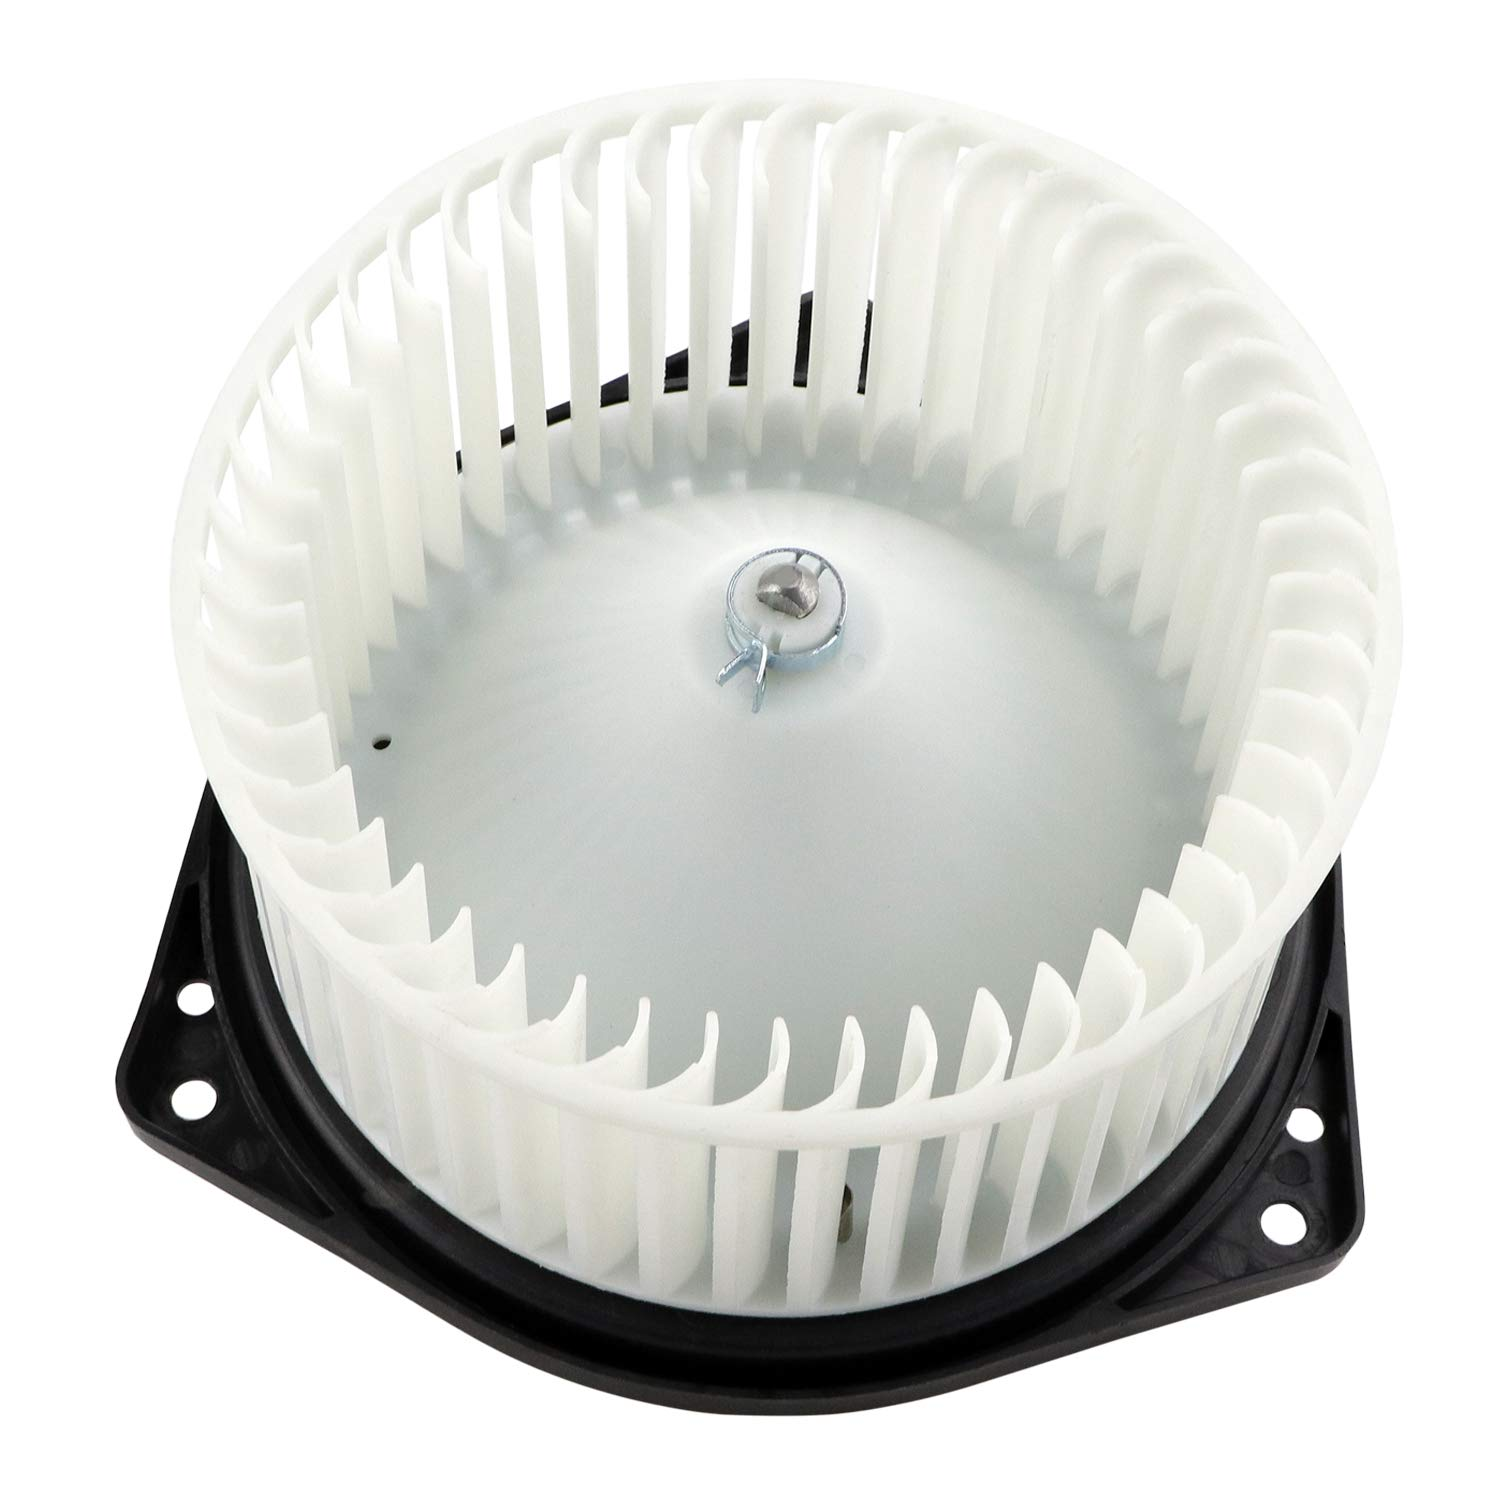 700038 Youxmoto AC Conditioning Heater Blower Motor with Fan HVAC Motors Fit for 2002 2003 2004 2005 2006 2007 Mitsubishi Lancer 2003 2004 2005 2006 Mitsubishi Outlander MR568593